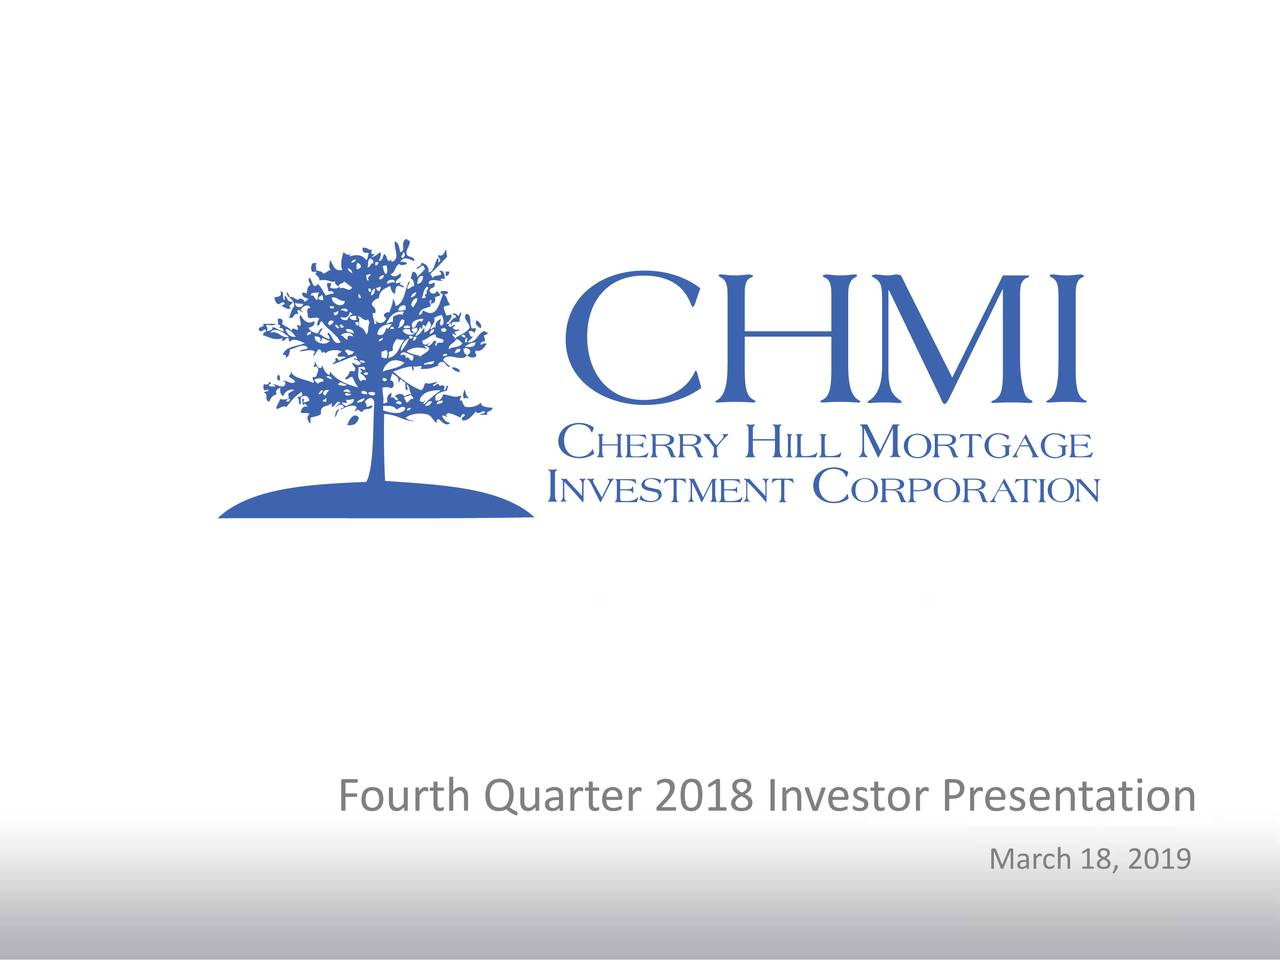 Fourth Quarter 2018 Investor Presentation